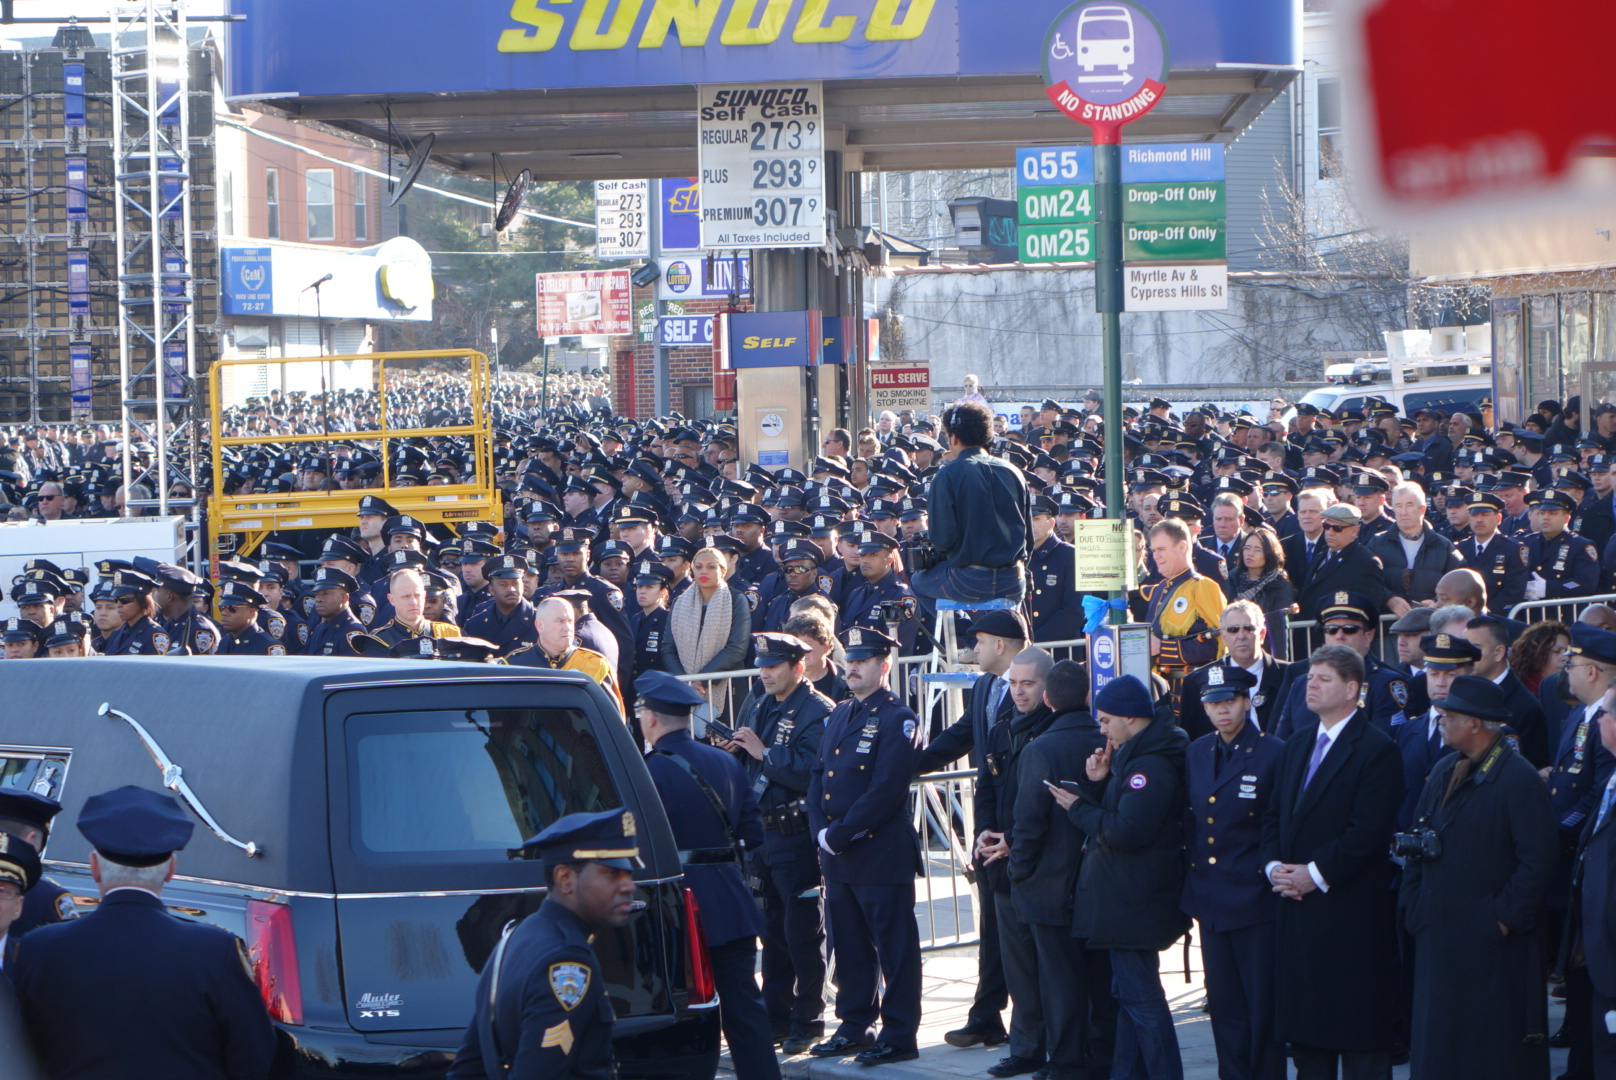 A hearse waited amid a sea of blue as the funeral was underway inside the church.